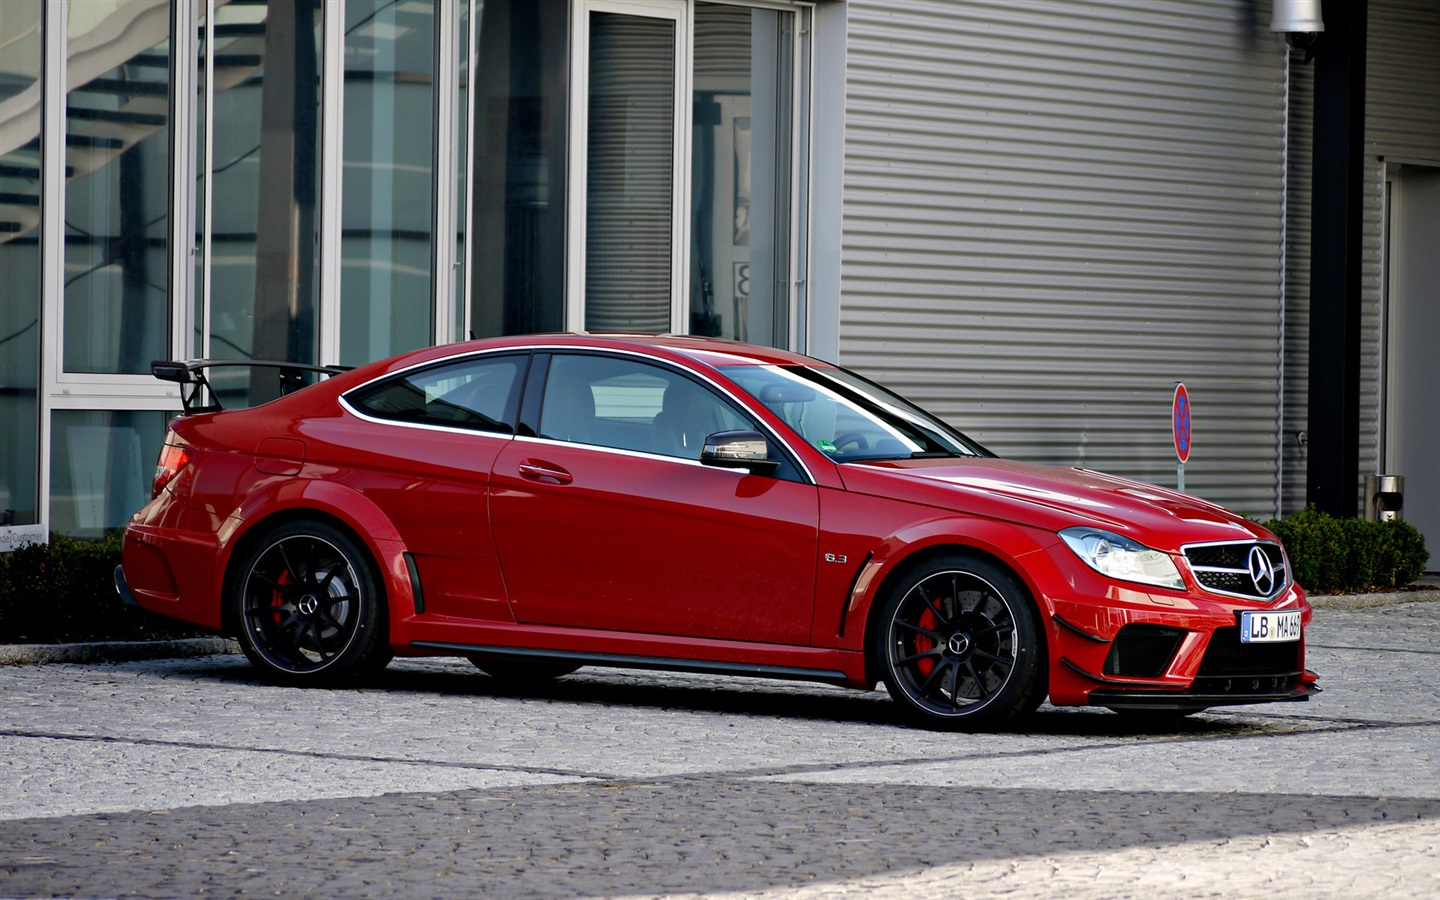 Mercedes benz amg c63 2017 2018 best cars reviews for Mercedes benz red